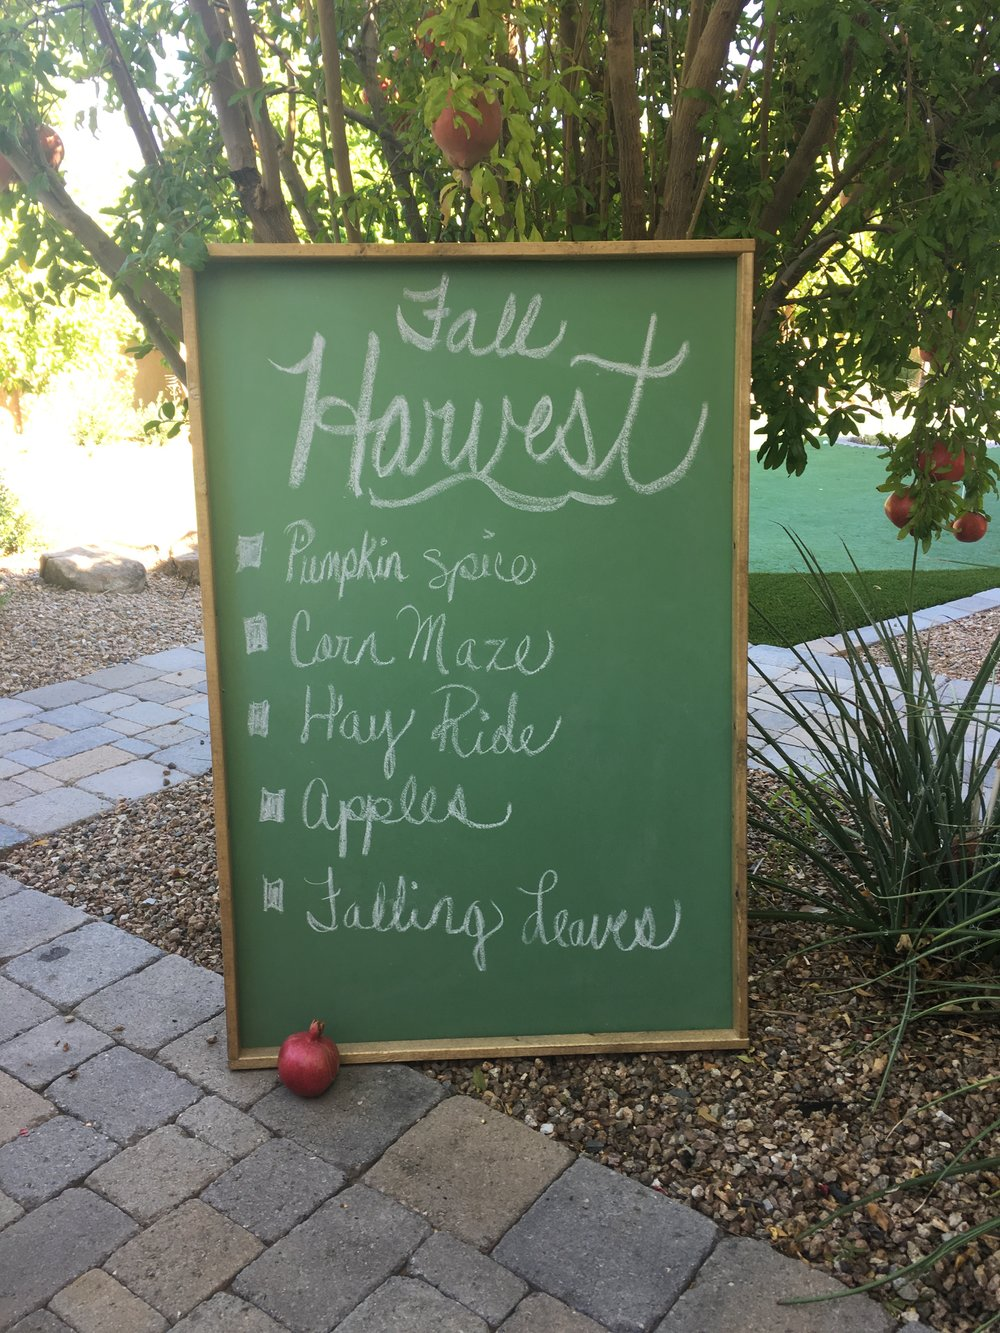 Added to the Chalkboard Collection: huge vintage chalkboard (click on this or any other image to open full size photo)